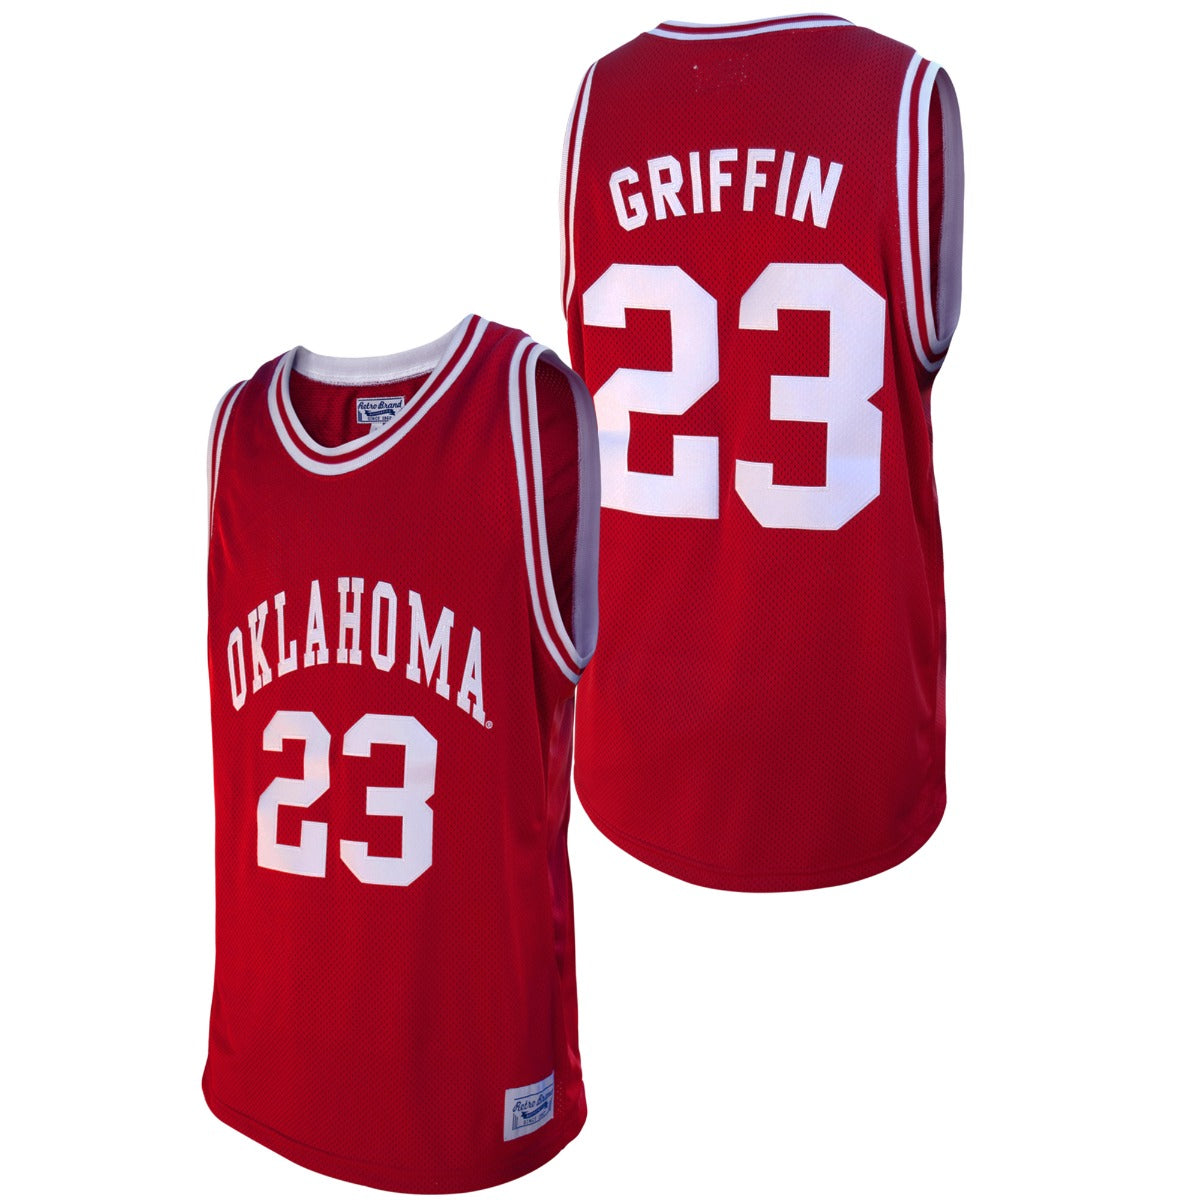 Oklahoma Sooners Blake Griffin Throwback Jersey